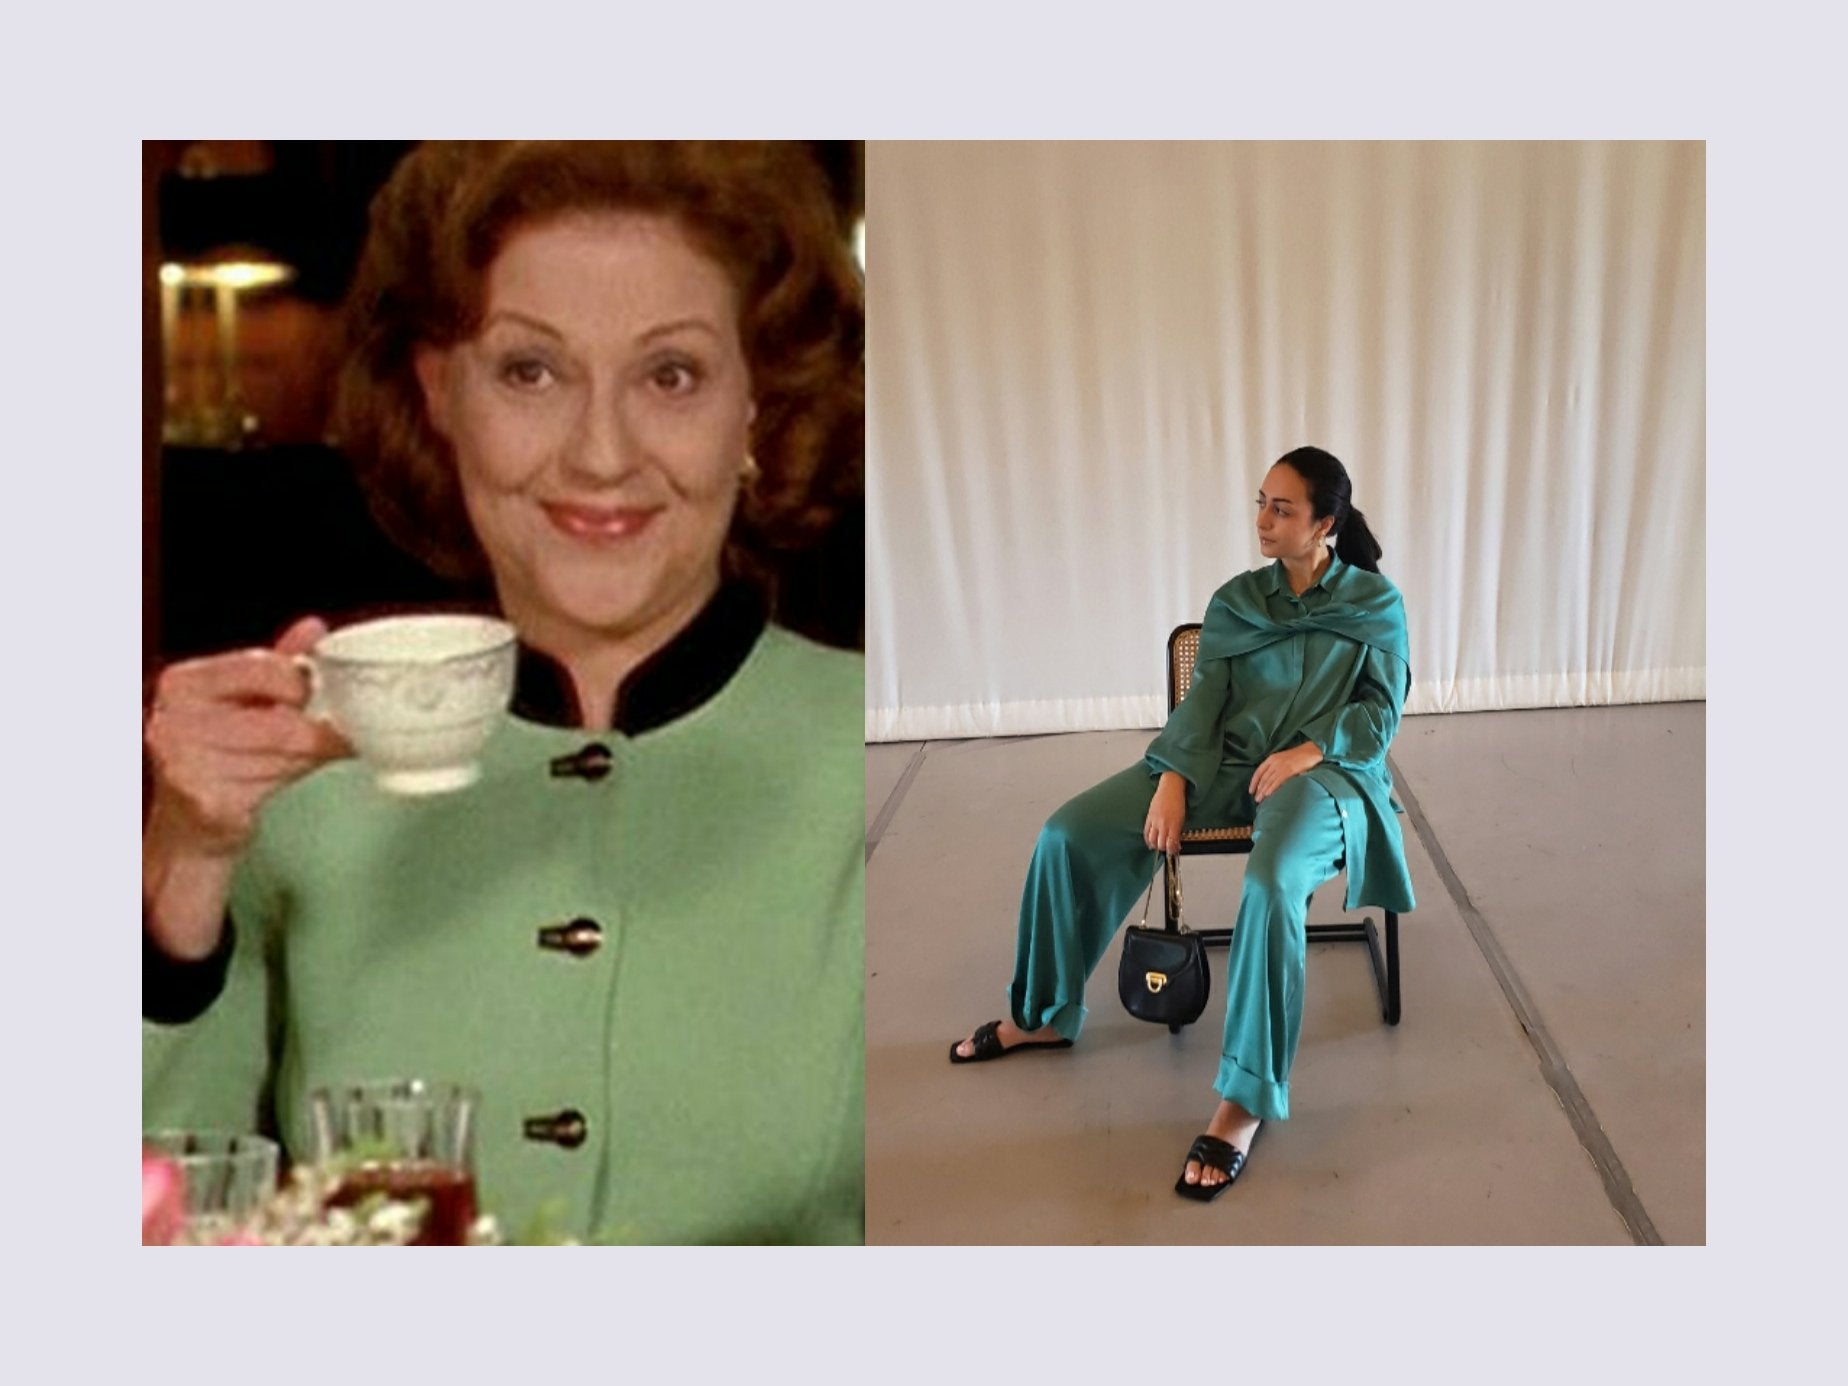 Emily gilmore from Gilmore Girls fashion. Curvy Muslim woman in designer clothing. Modest long sleeve silk top with buttons on matching wide leg green silk pants with black leather purse and black leather sandals.